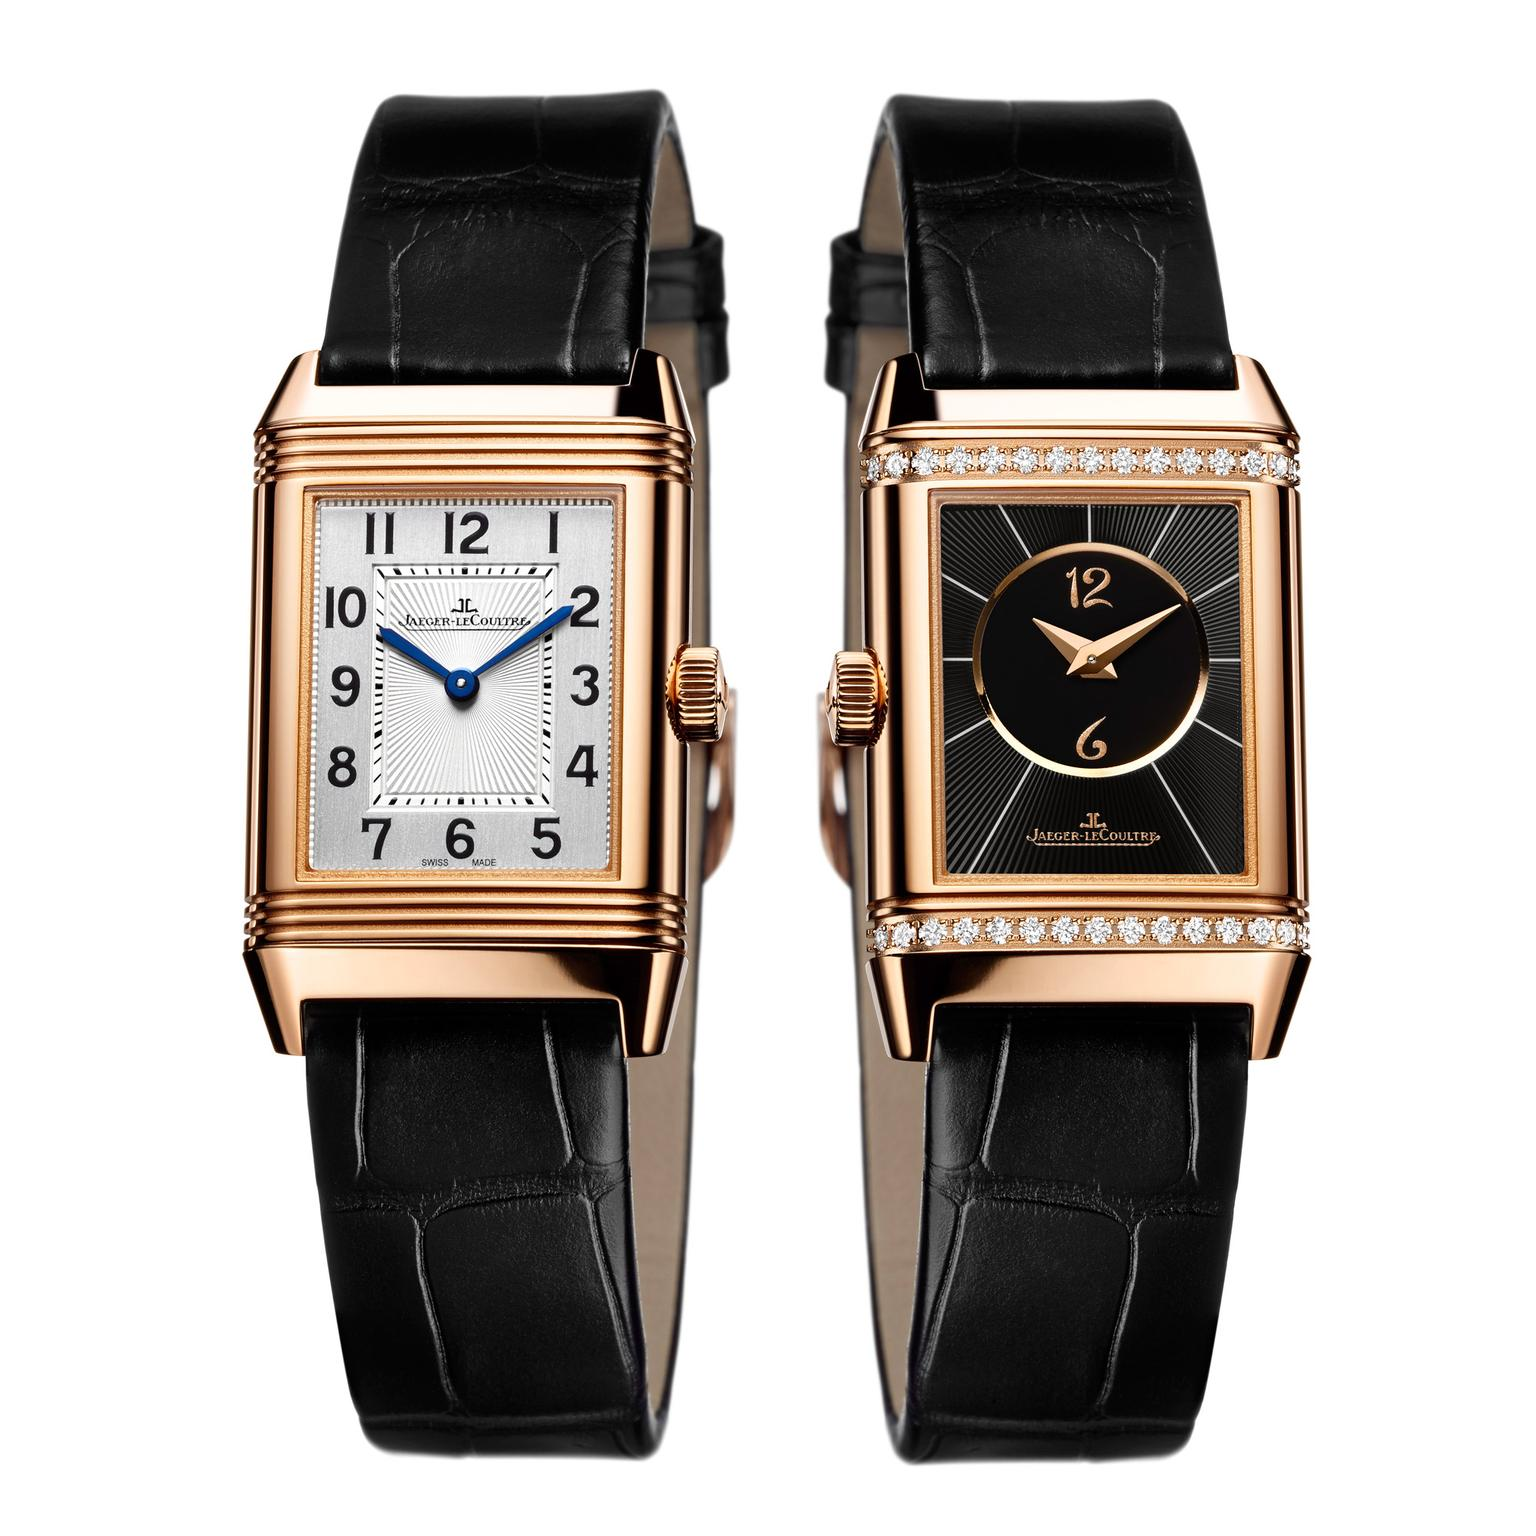 Jaeger-LeCoultre Reverso back and front